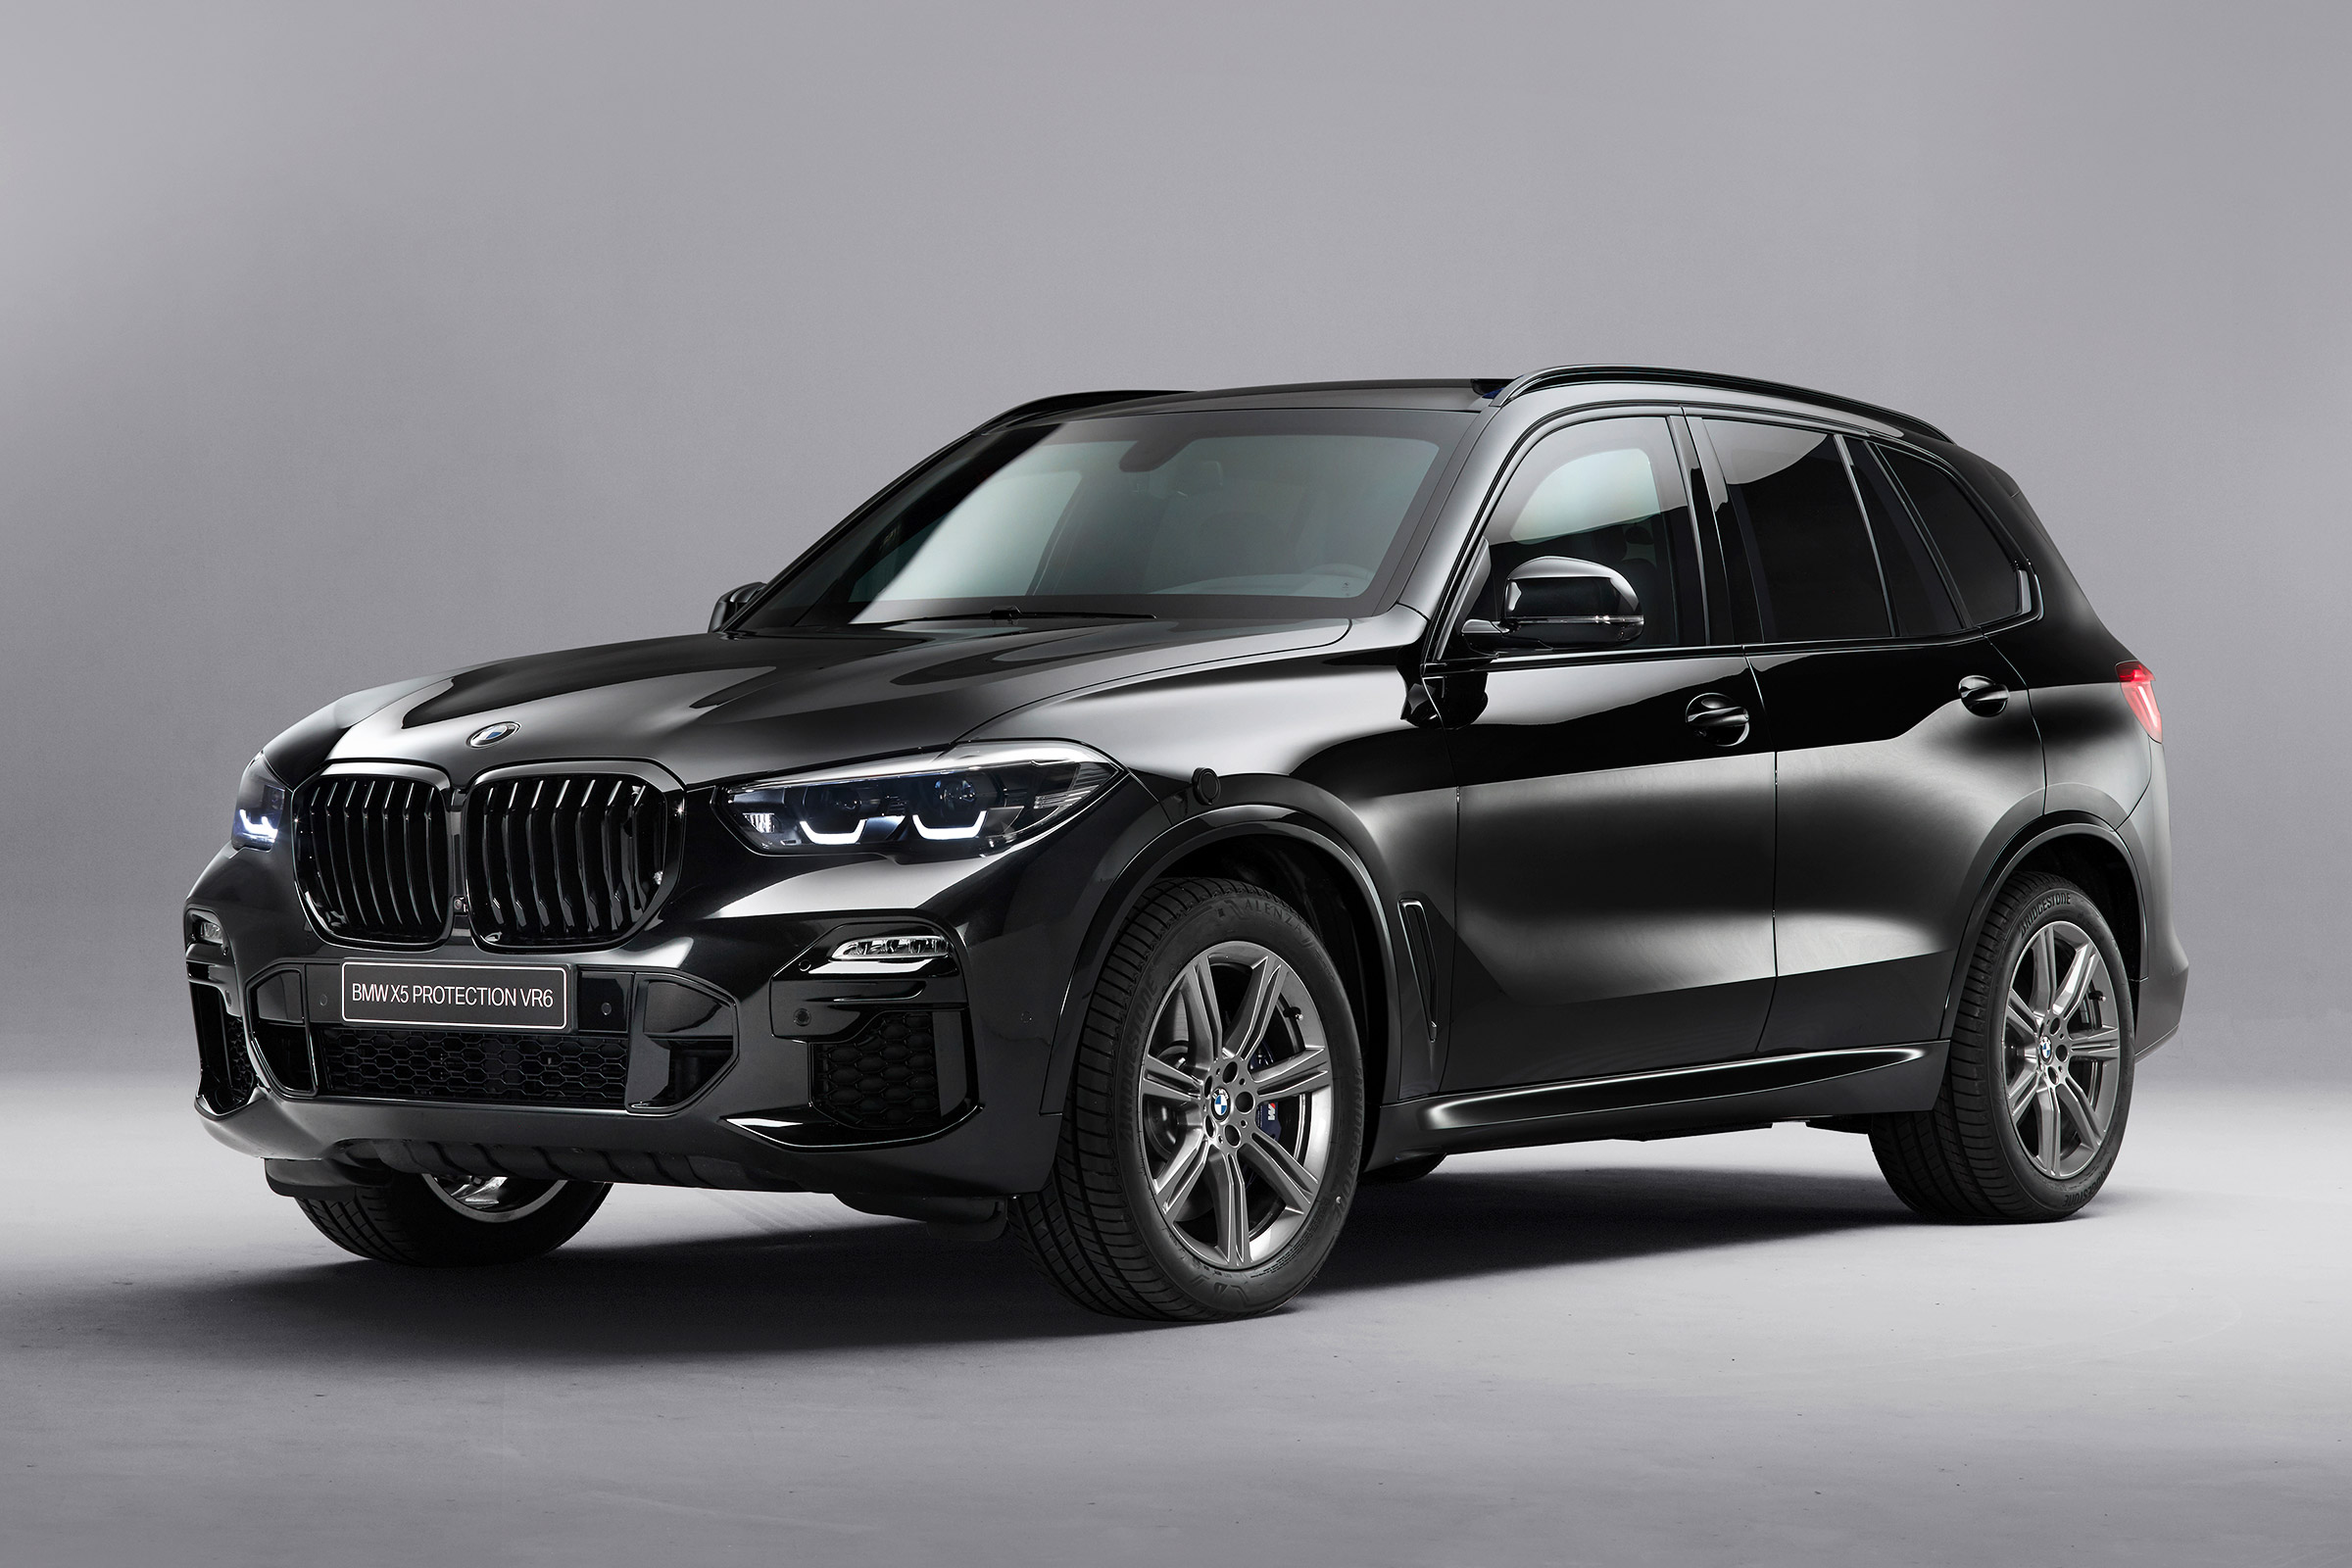 Armour-plated BMW X5 Protection VR6 launched | Auto Express